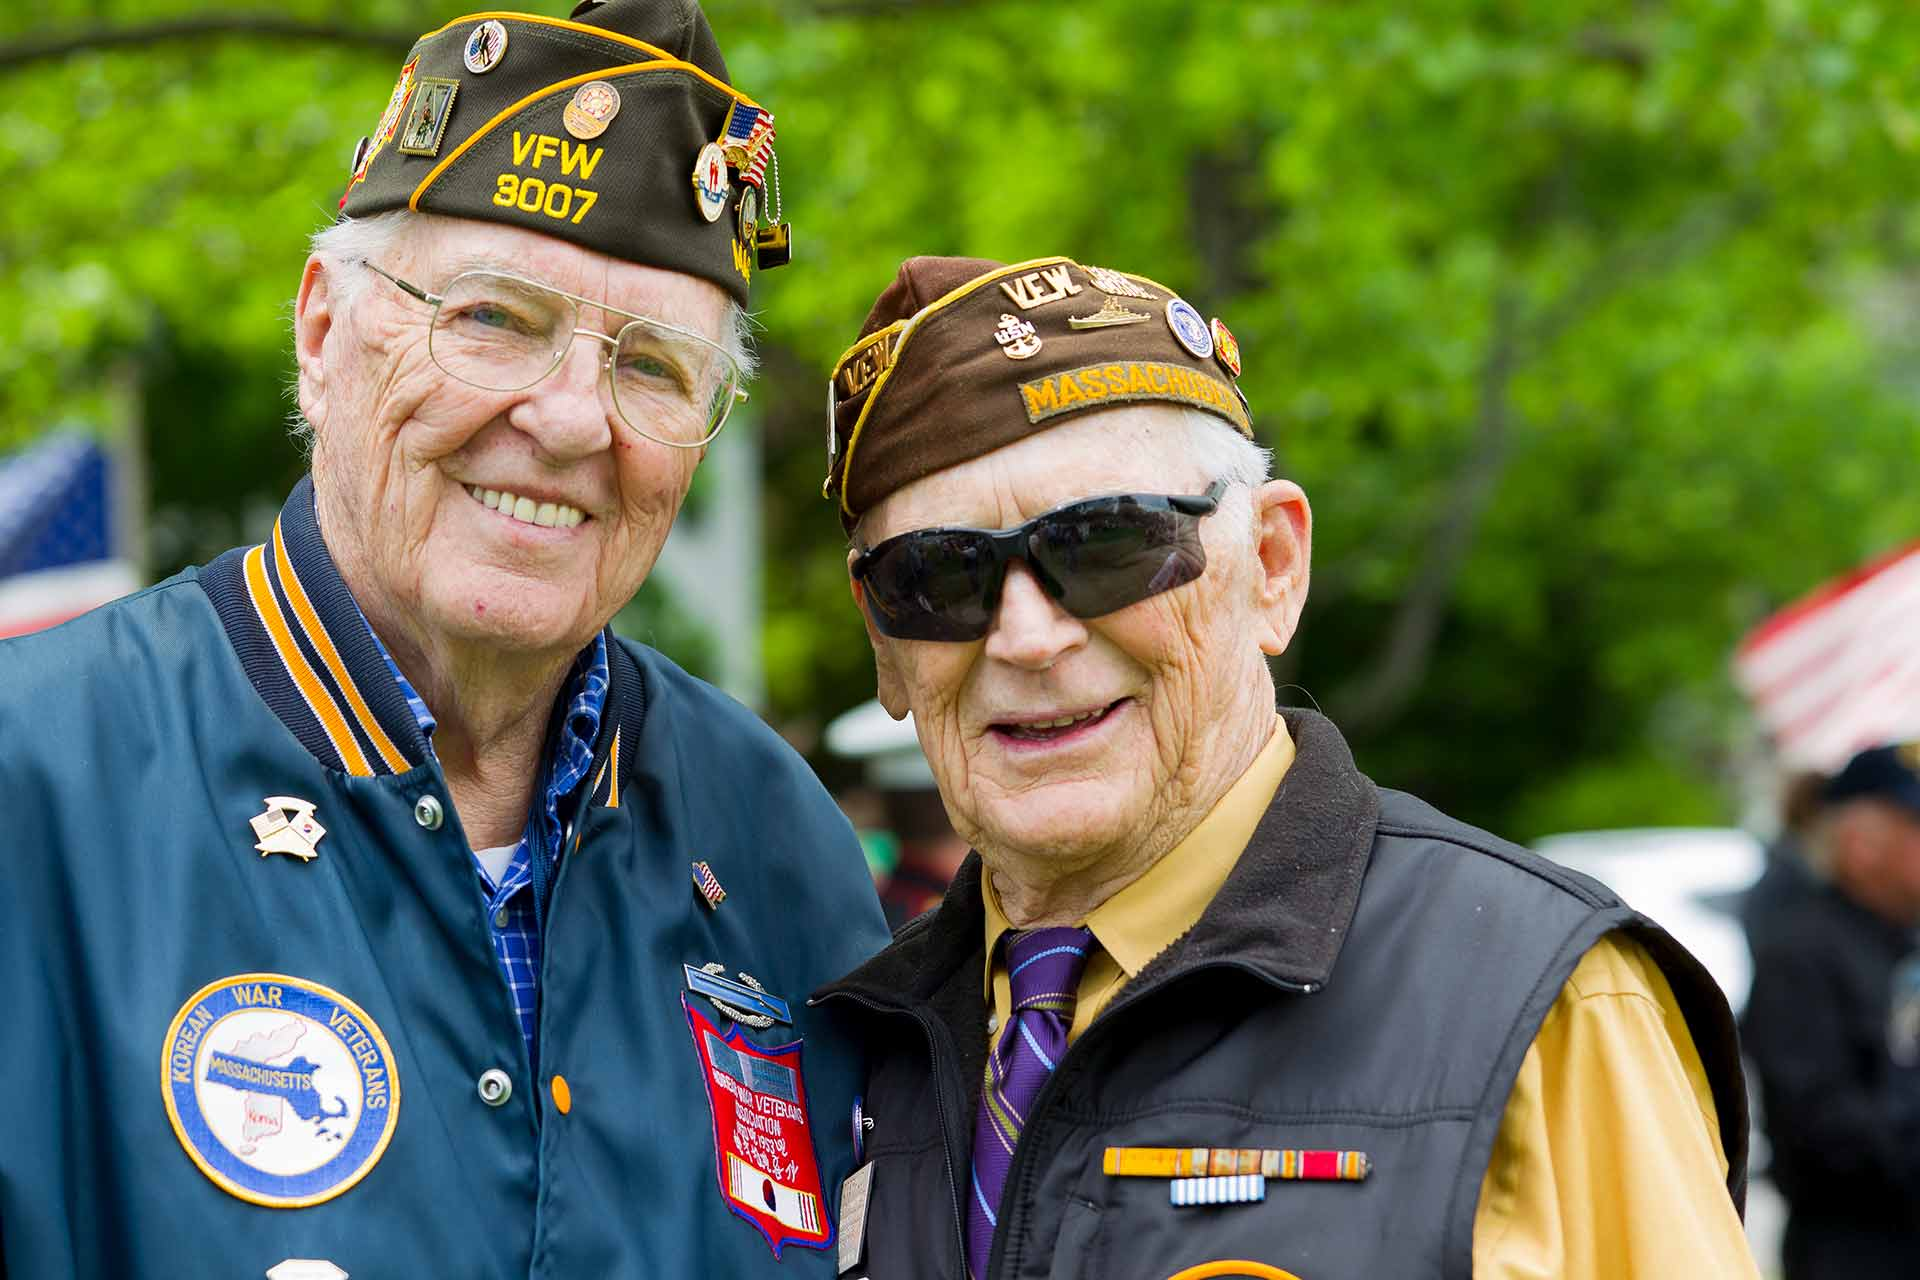 Image of proud veterans